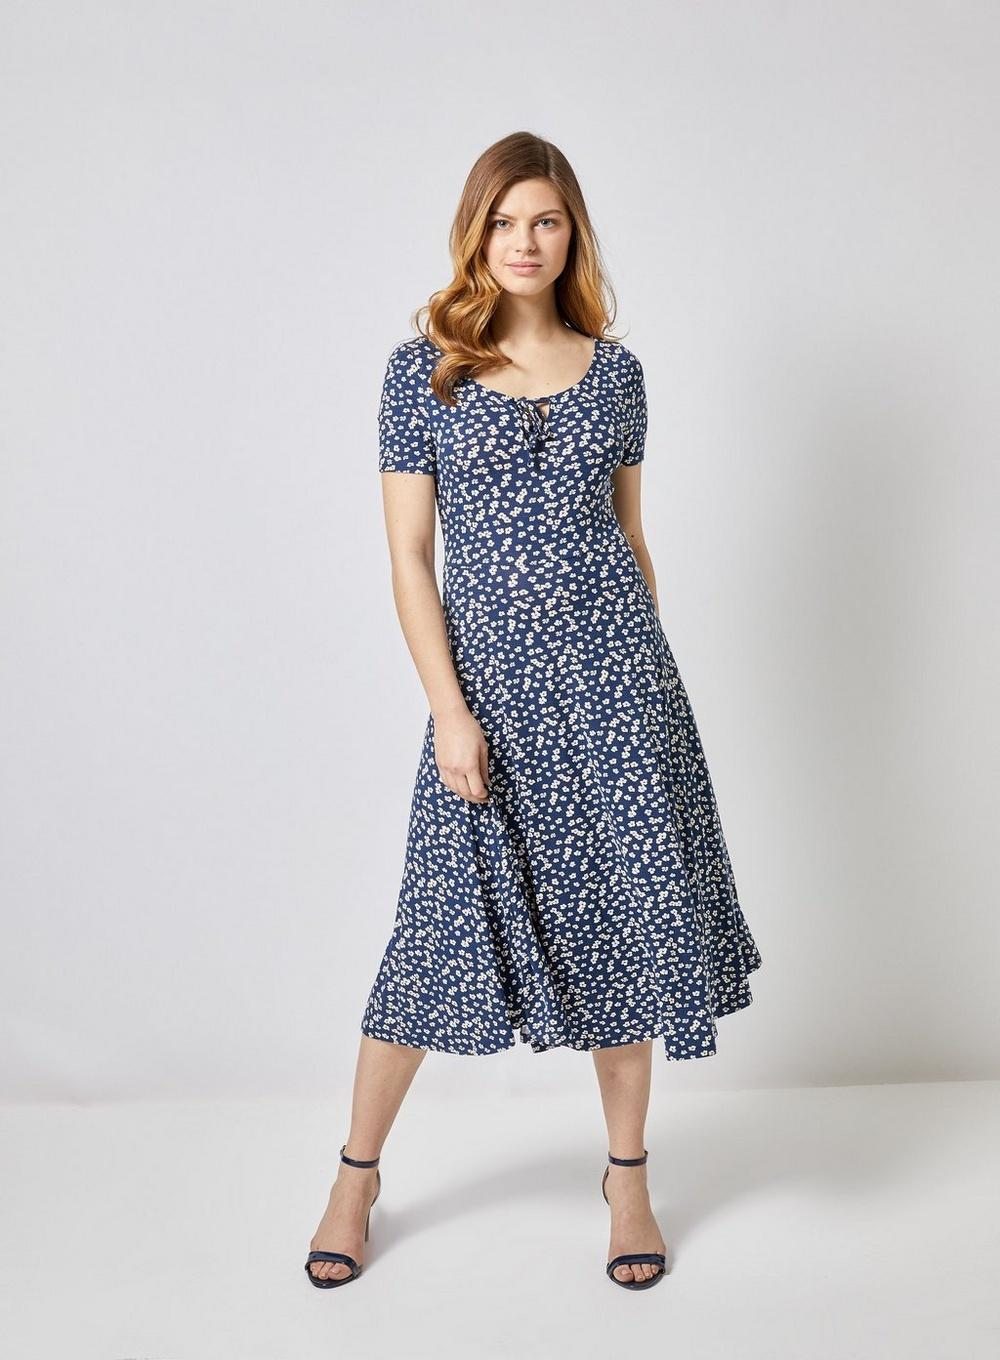 acc9d96a0b7 Dorothy Perkins - Blue Navy And White Floral Print Midi Skater Dress -  Lyst. View fullscreen